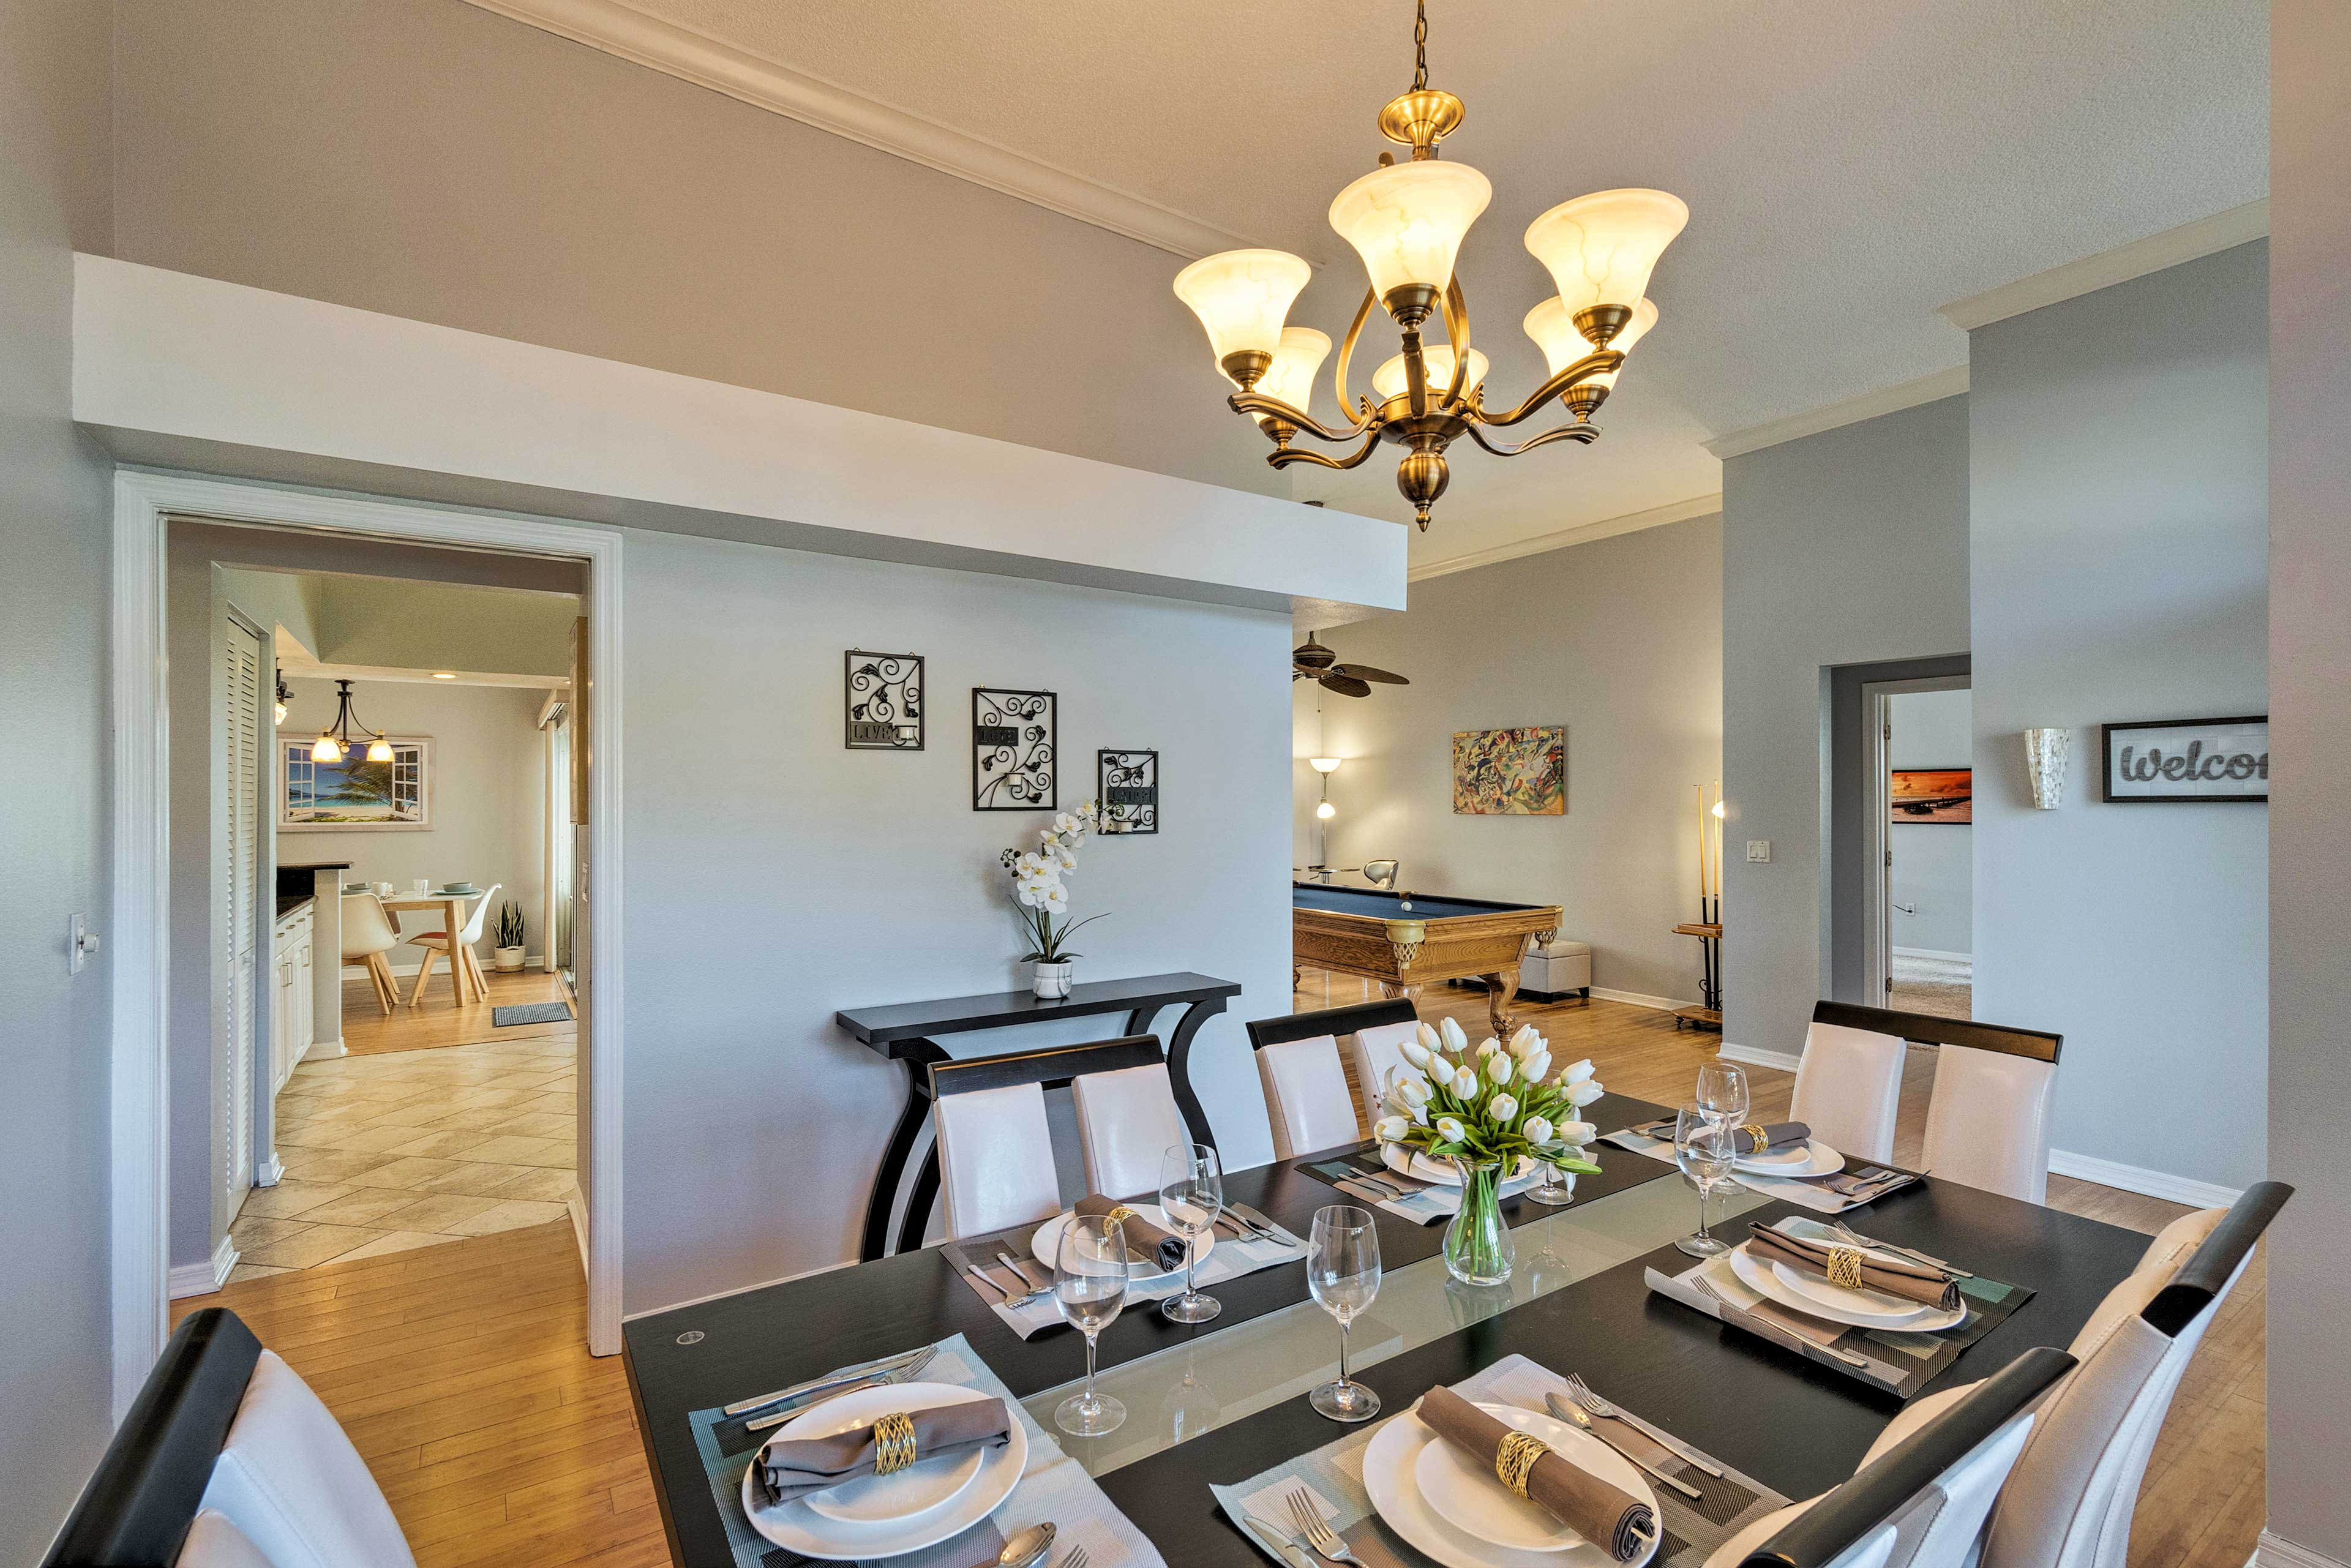 Elegant dining awaits at the 6-person dining room table.